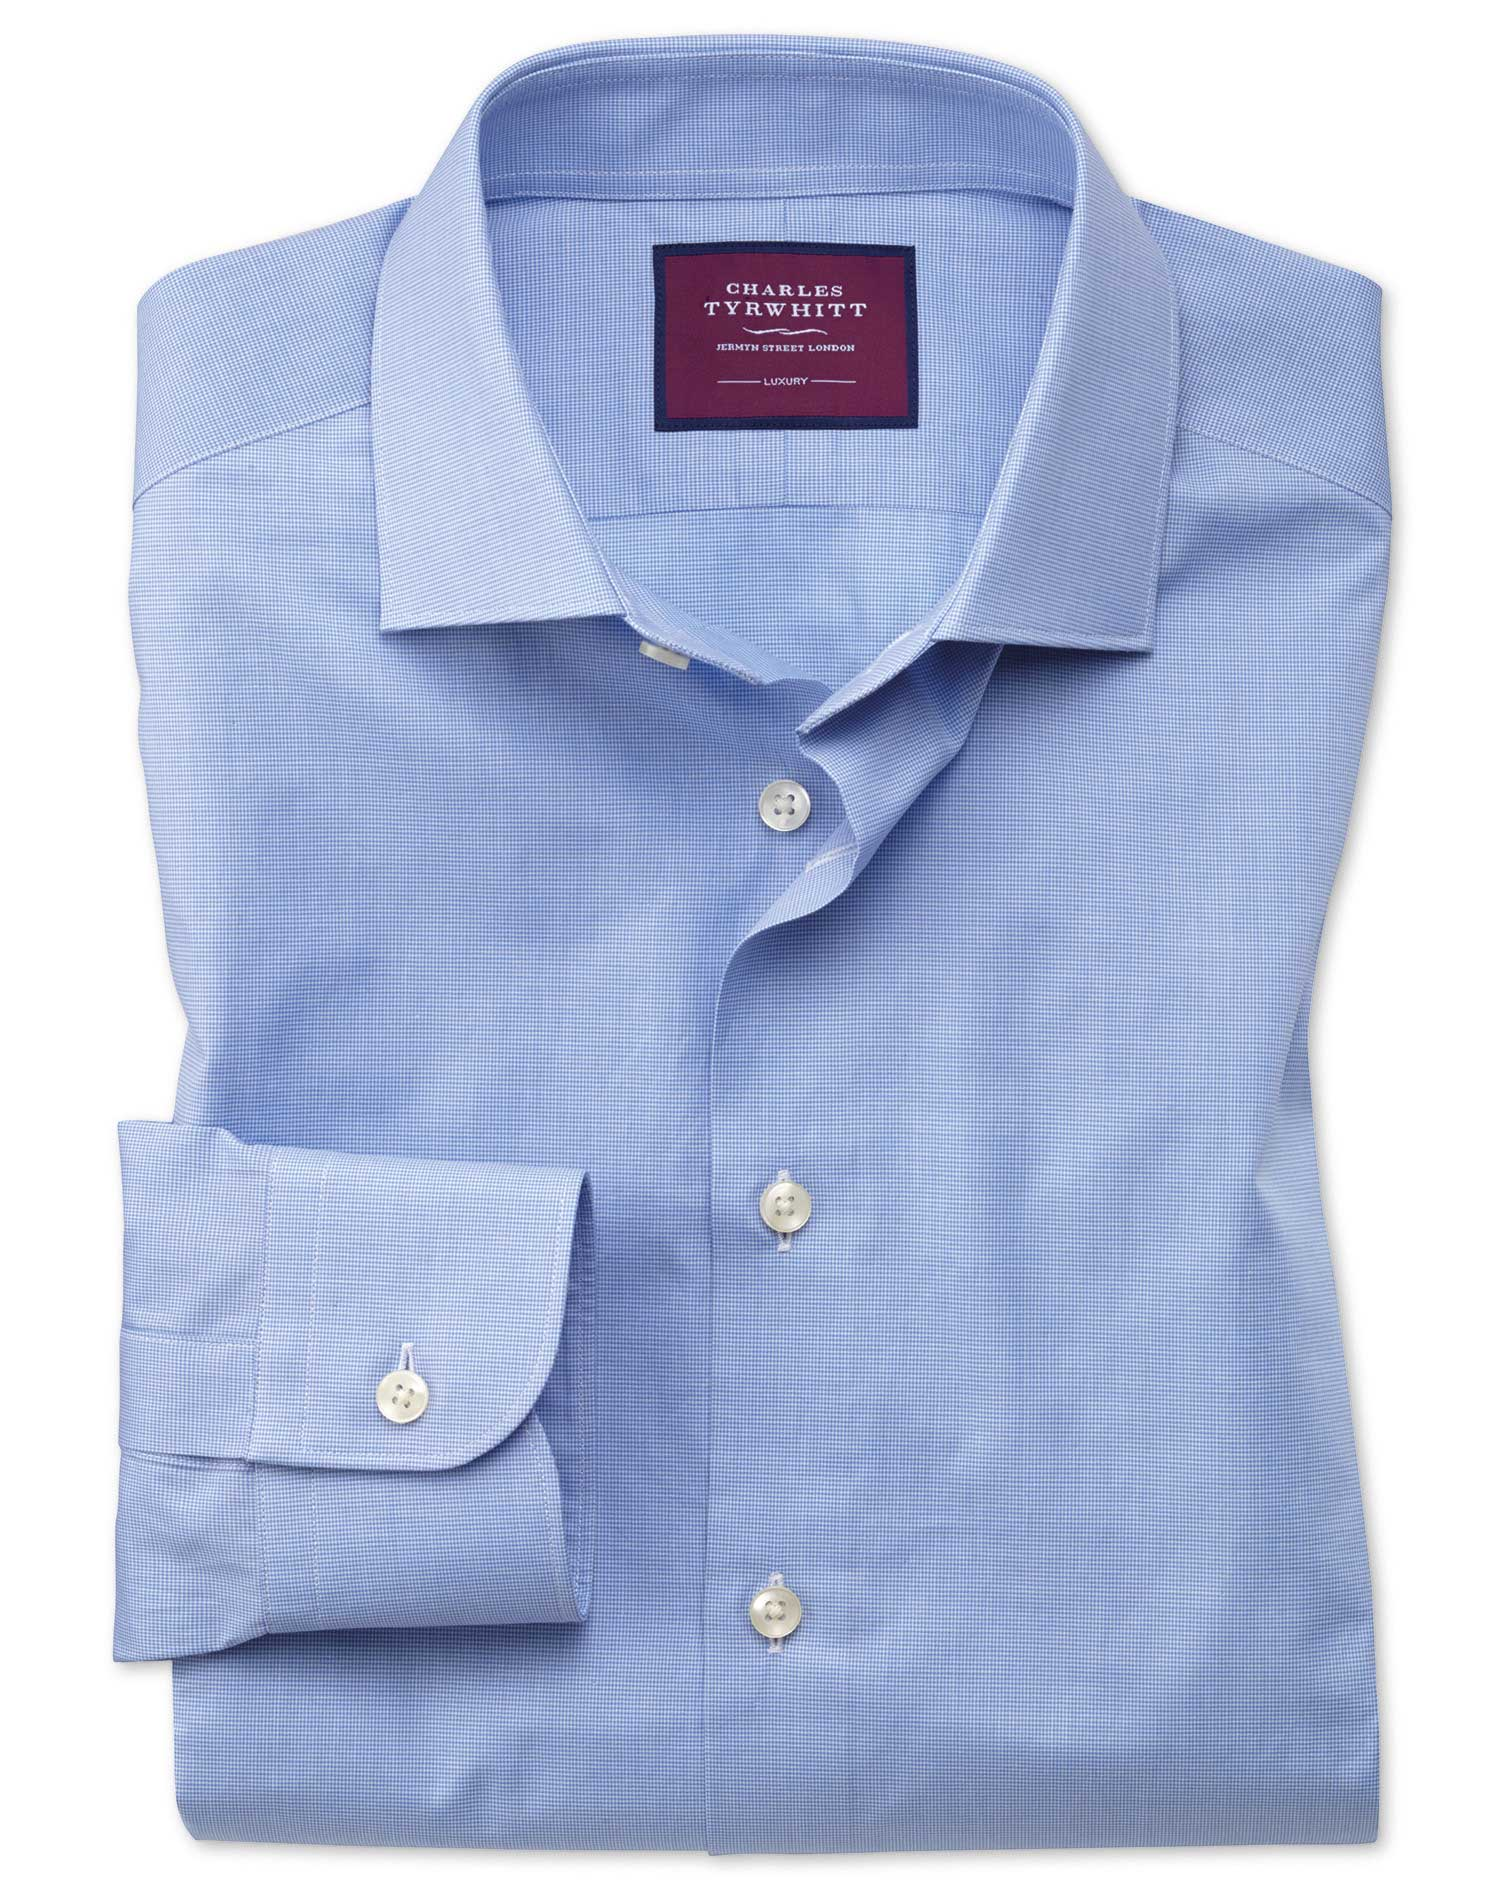 Slim Fit Blue Small Puppytooth Luxury Cotton Formal Shirt Single Cuff Size 16/34 by Charles Tyrwhitt